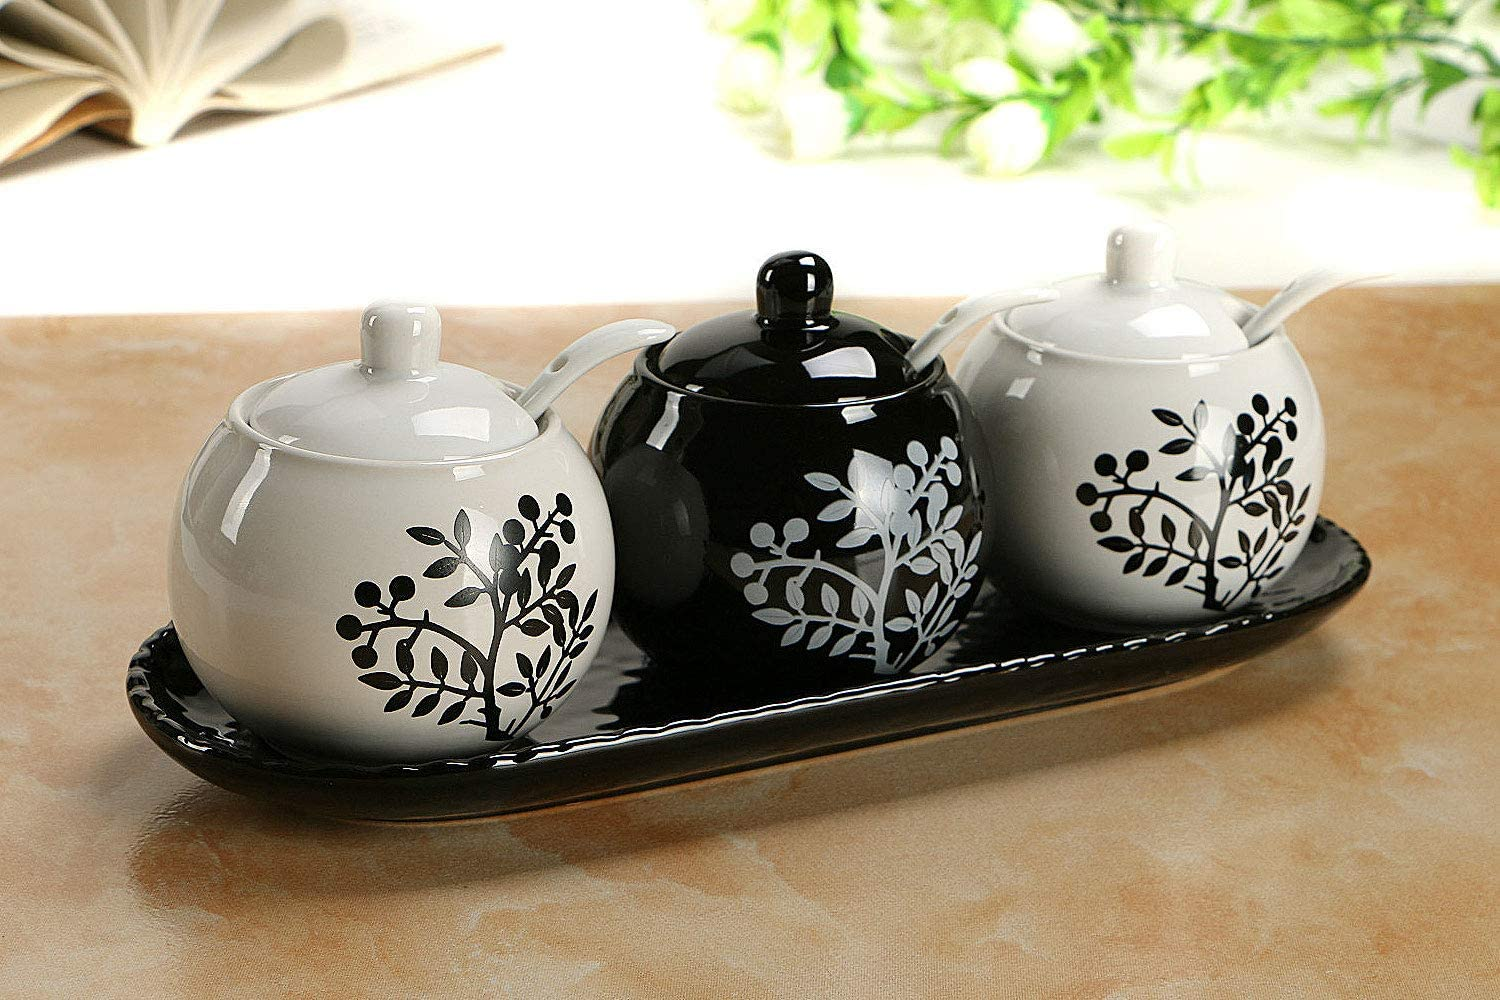 Tray and Spoons Muti-Functional Round Condiment Jar for Home Set of 3 VanEnjoy Ceramic Sugar Spice Containers Porcelain Jar with Bamboo Lids